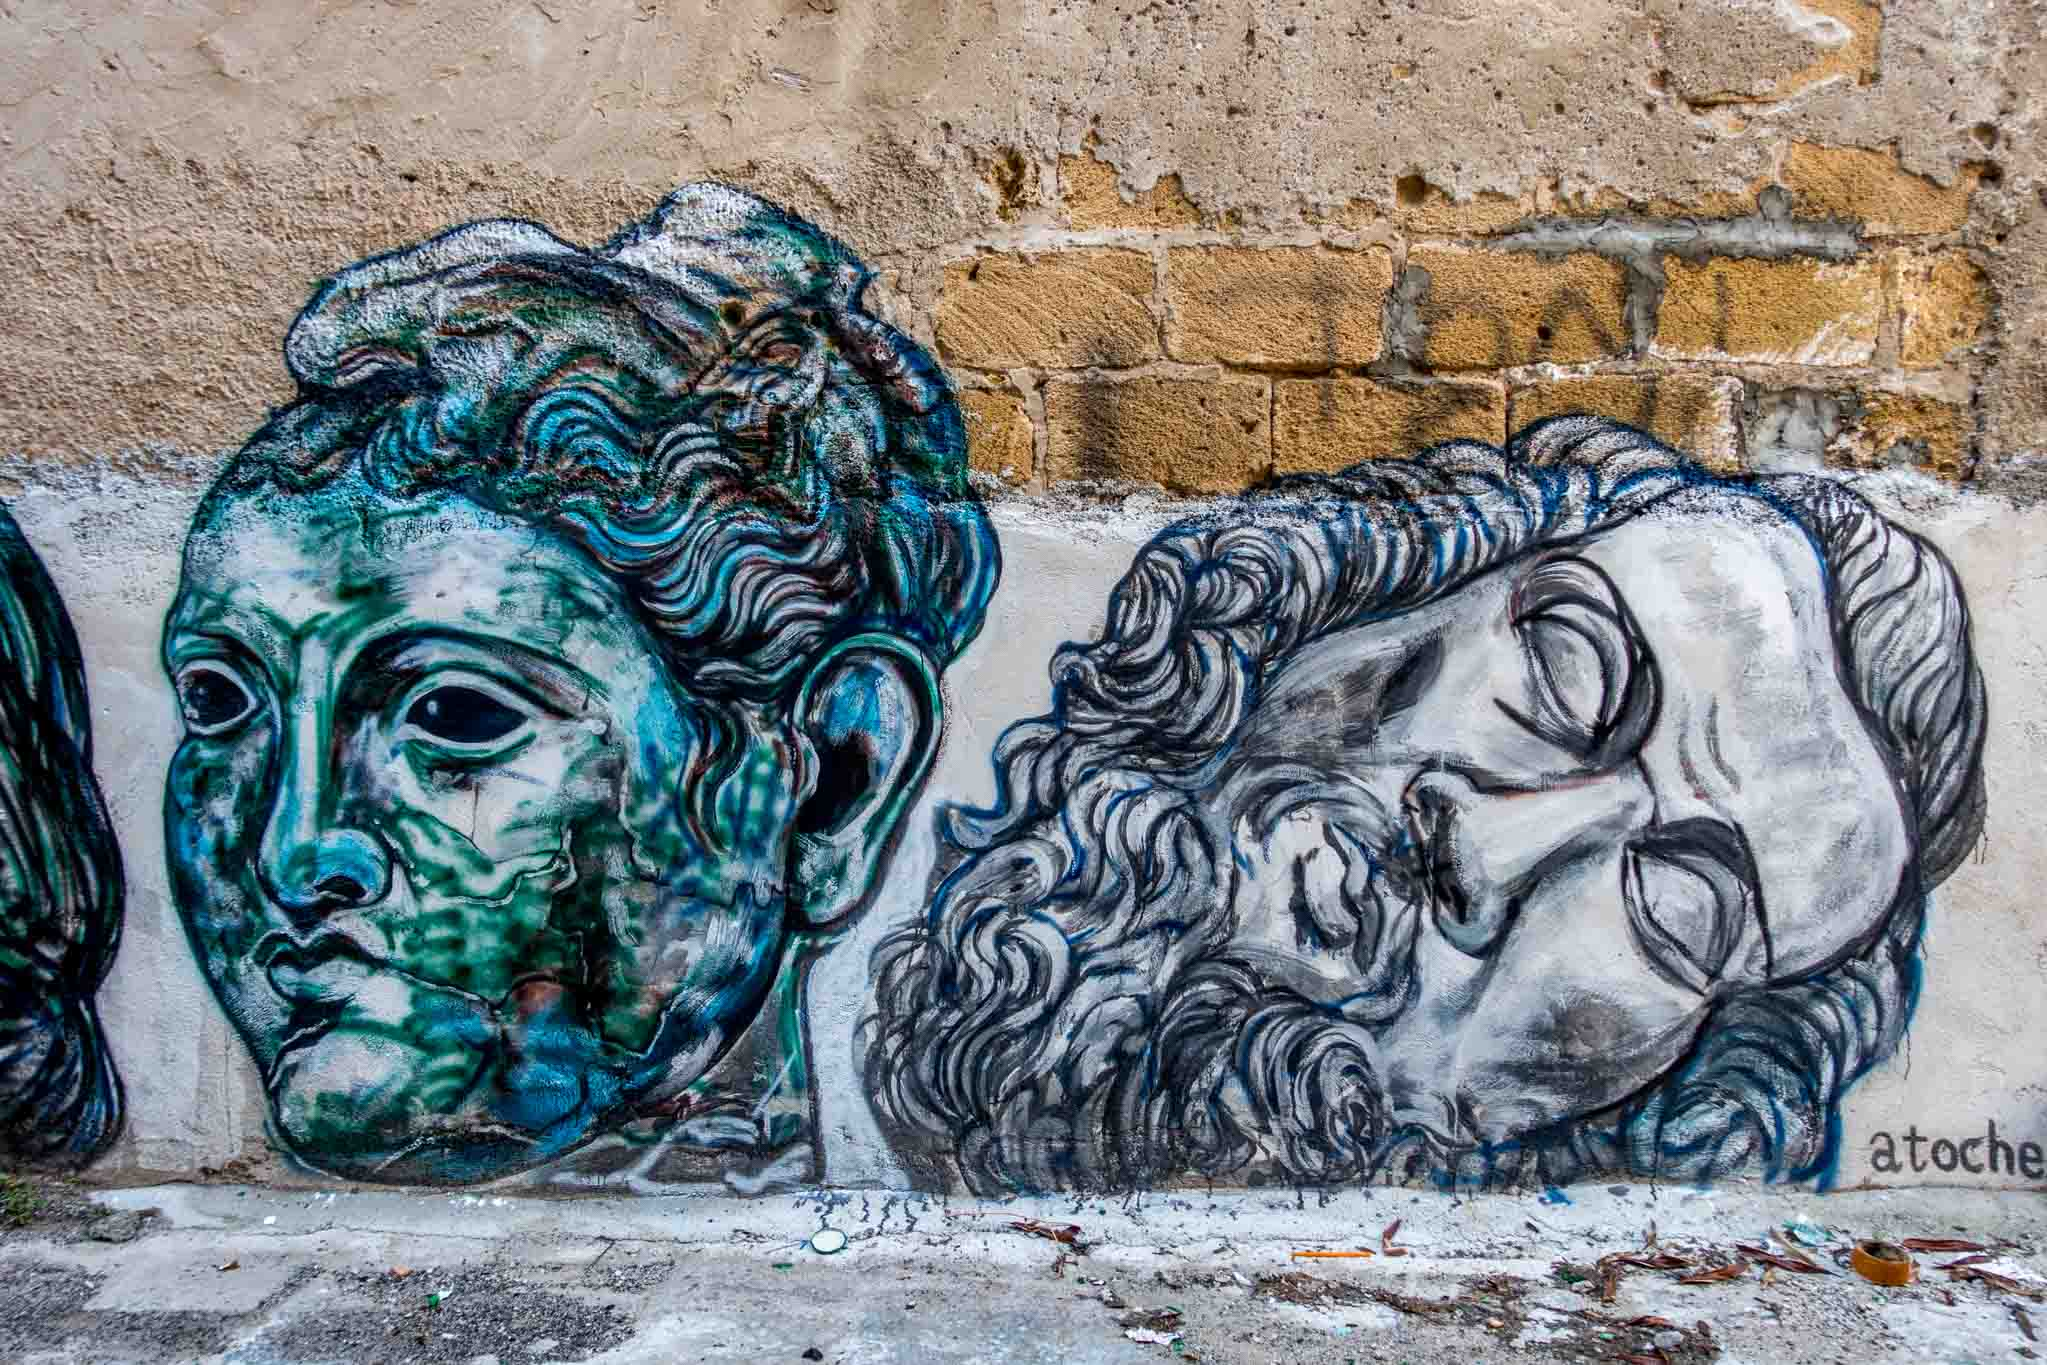 Two heads in a street art mural signed by artist Atoche